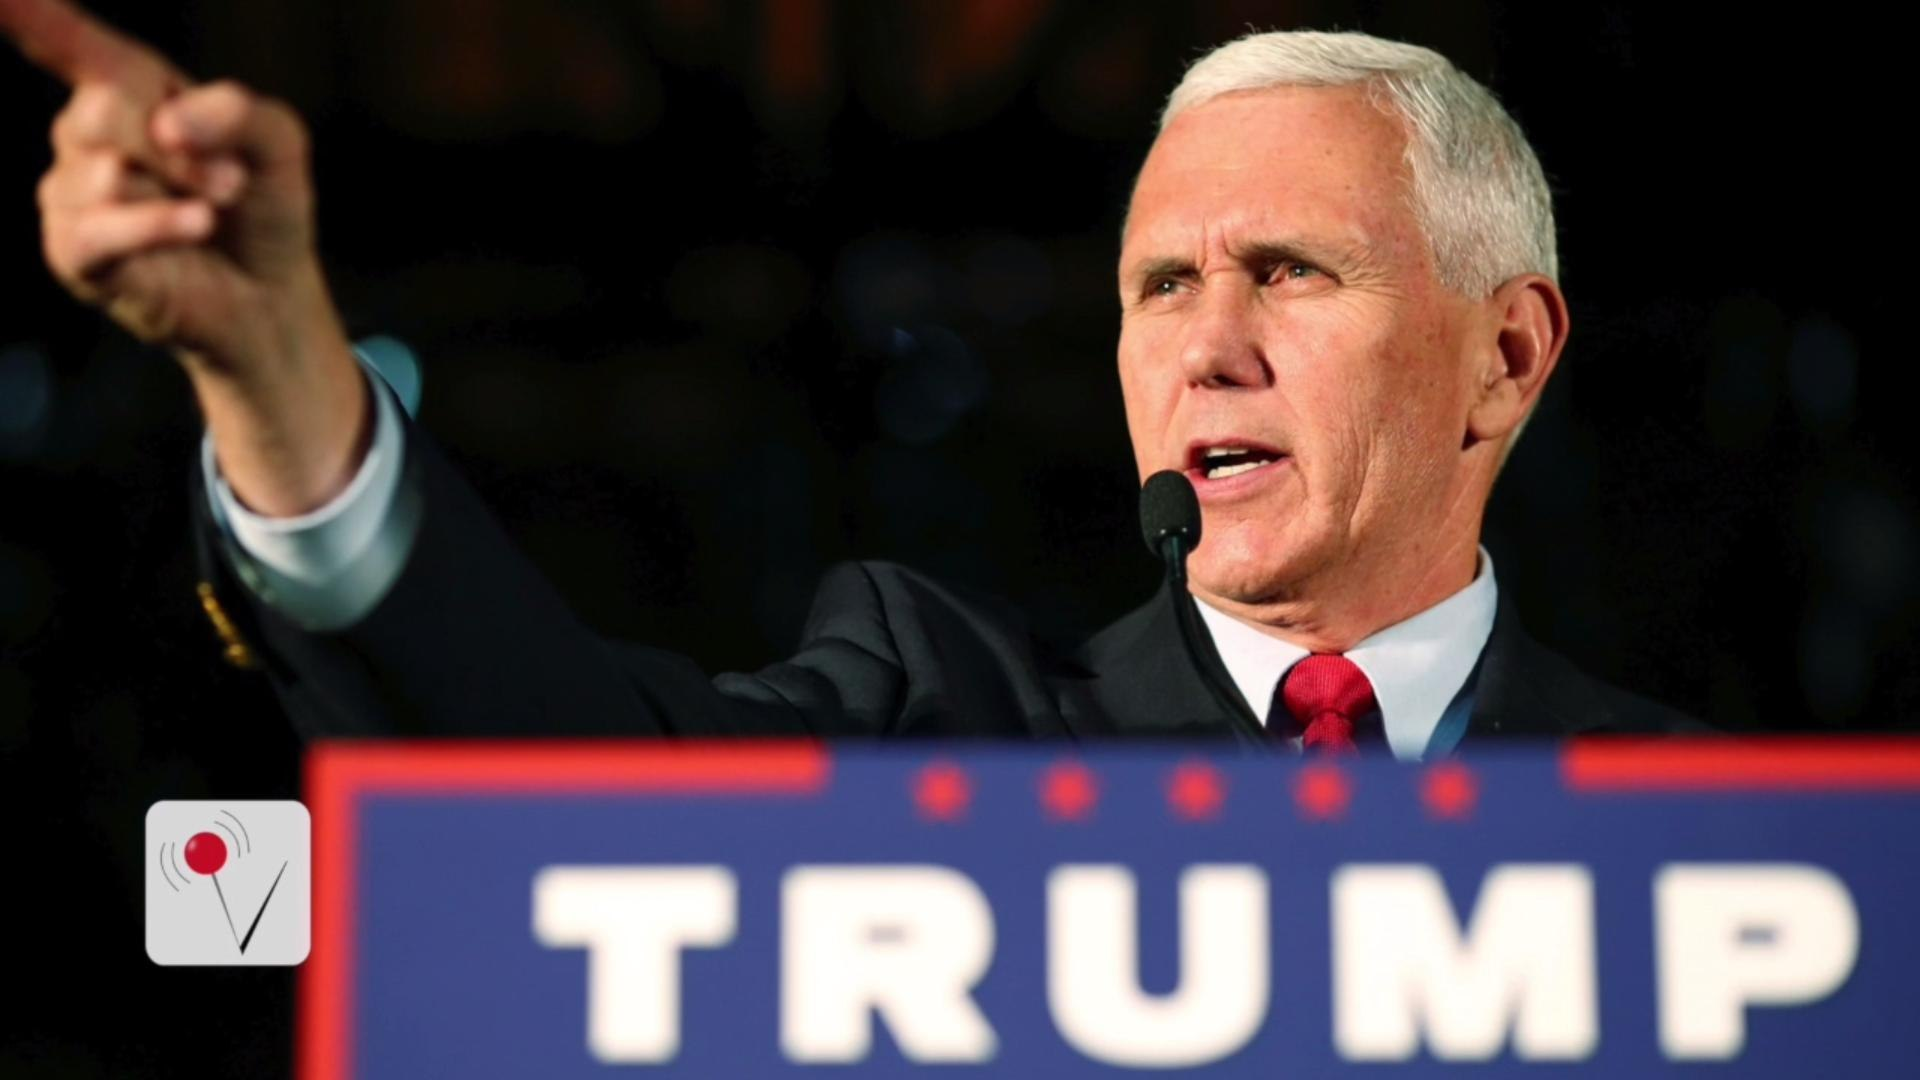 Mike Pence Defends Donald Trump on Leaked Video: 'He Apologized'